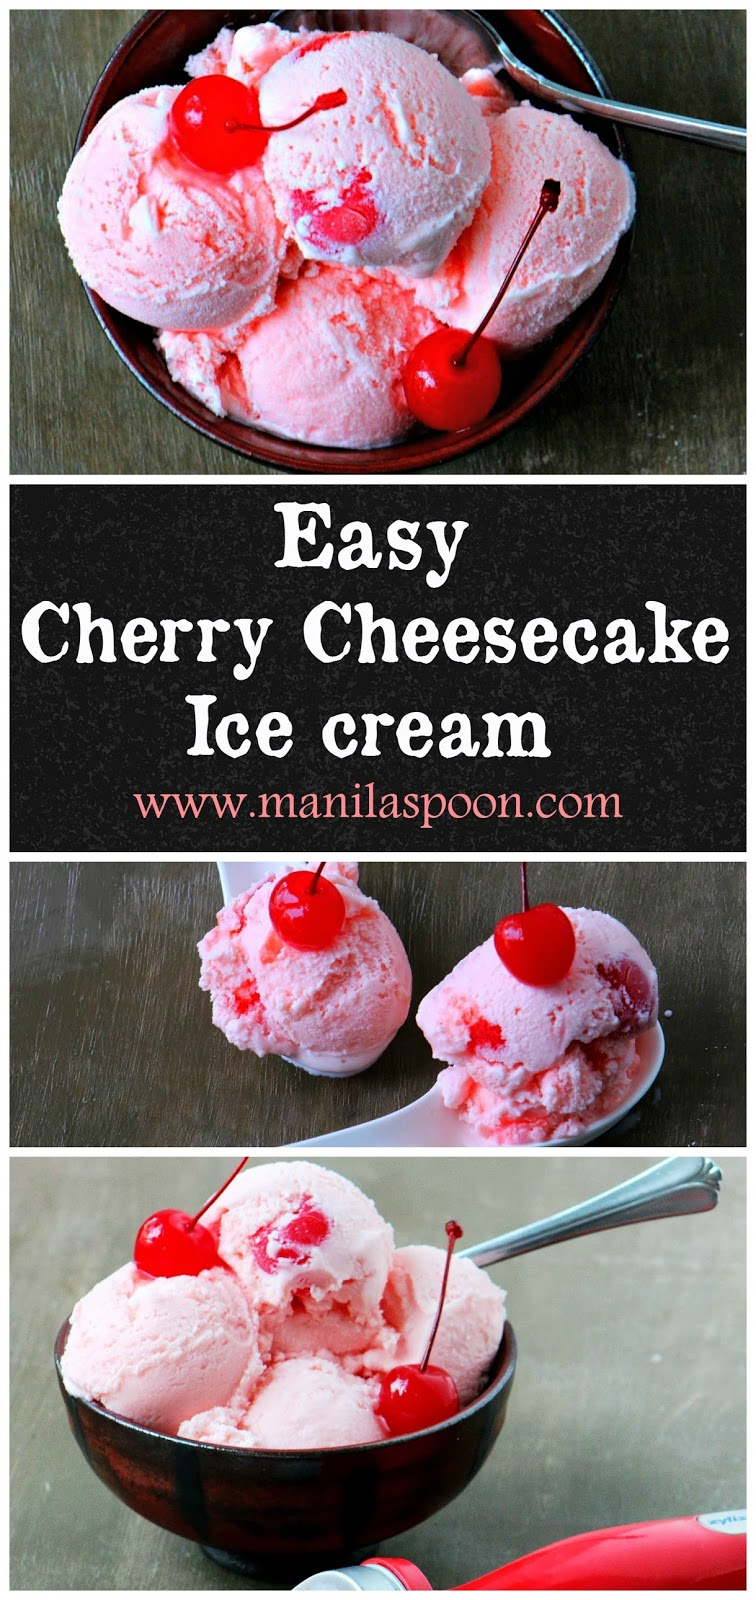 Cherry Cheesecake Ice Cream